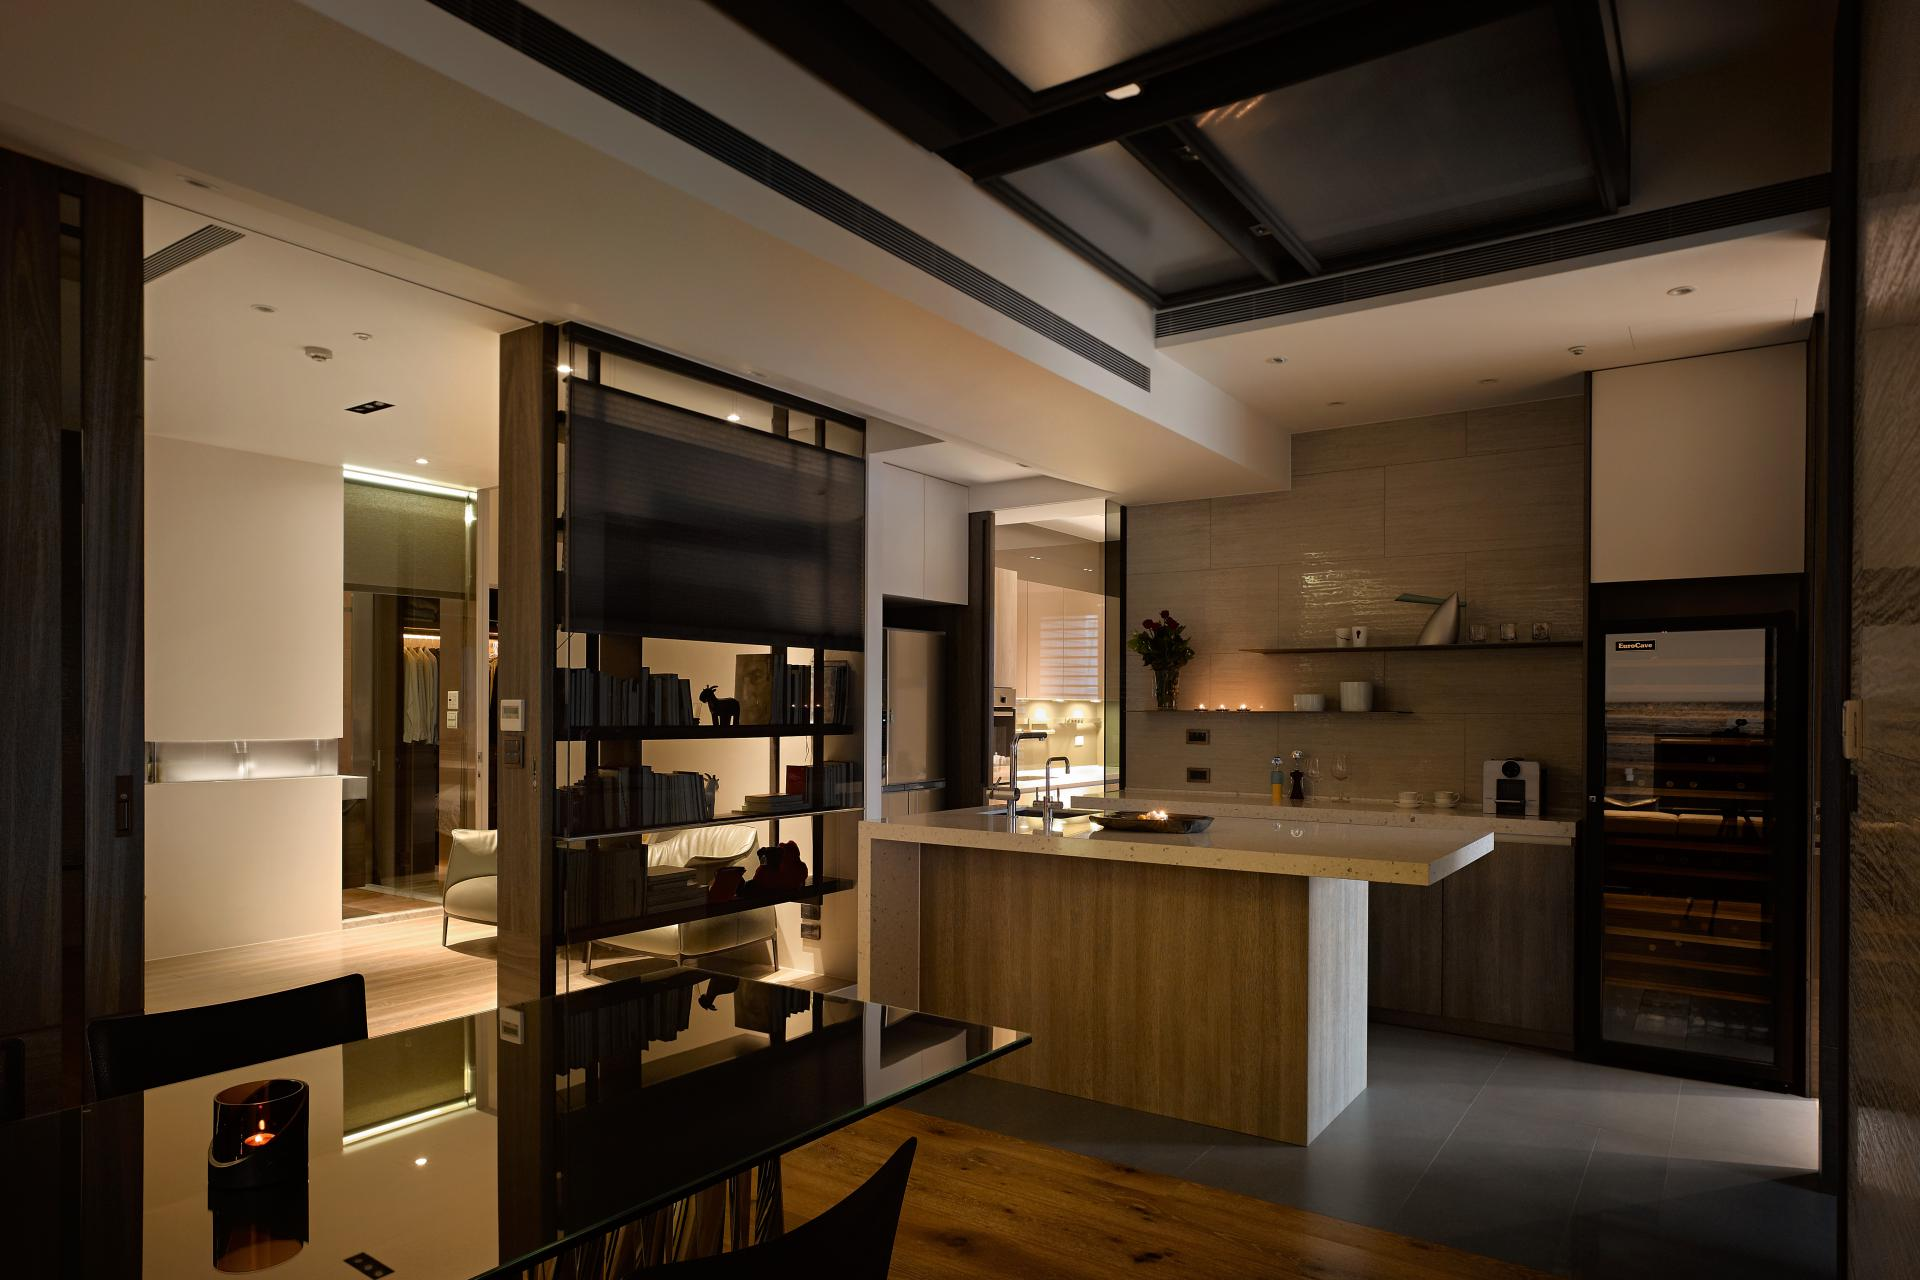 Kitchen Remodeling Design Ideas Inspiration: Two Taiwan Homes Take Beautiful Inspiration From Nature